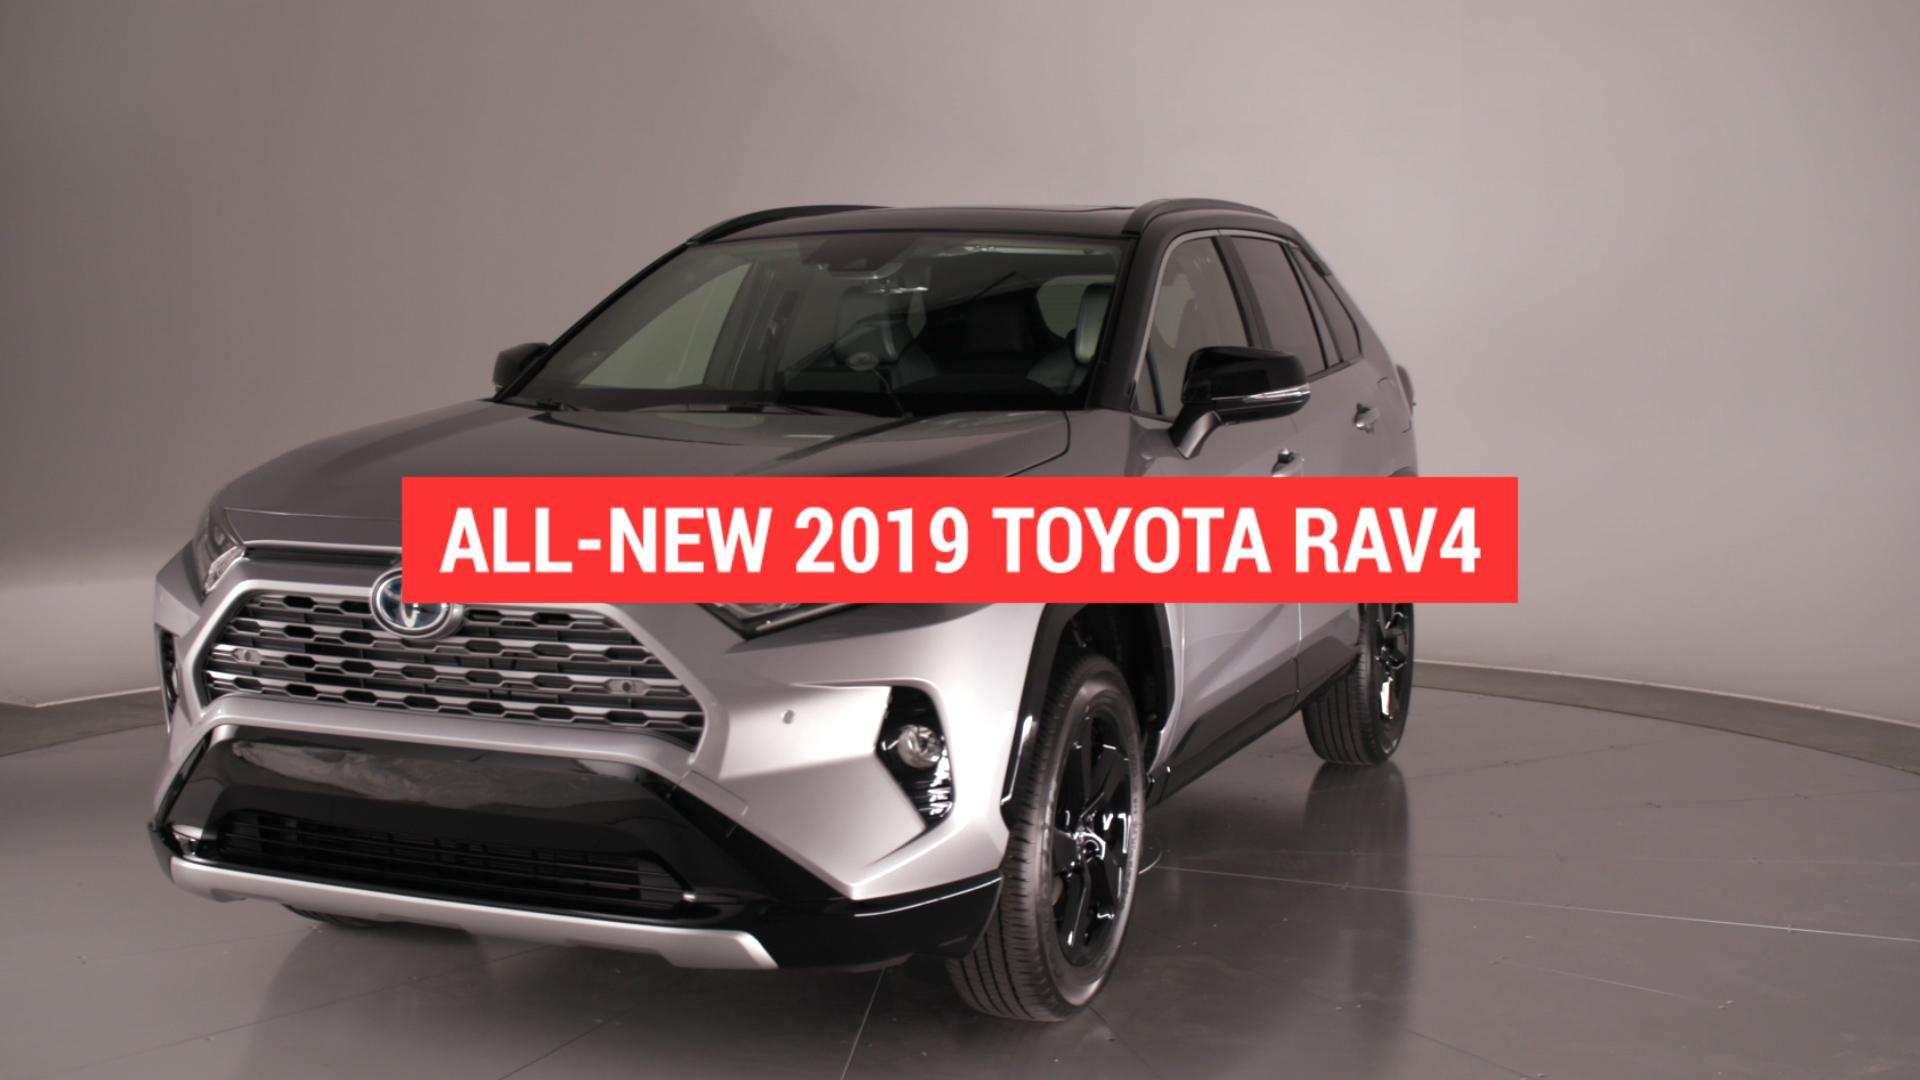 11 New 2019 Toyota Rav4 Jalopnik Rumors with 2019 Toyota Rav4 Jalopnik